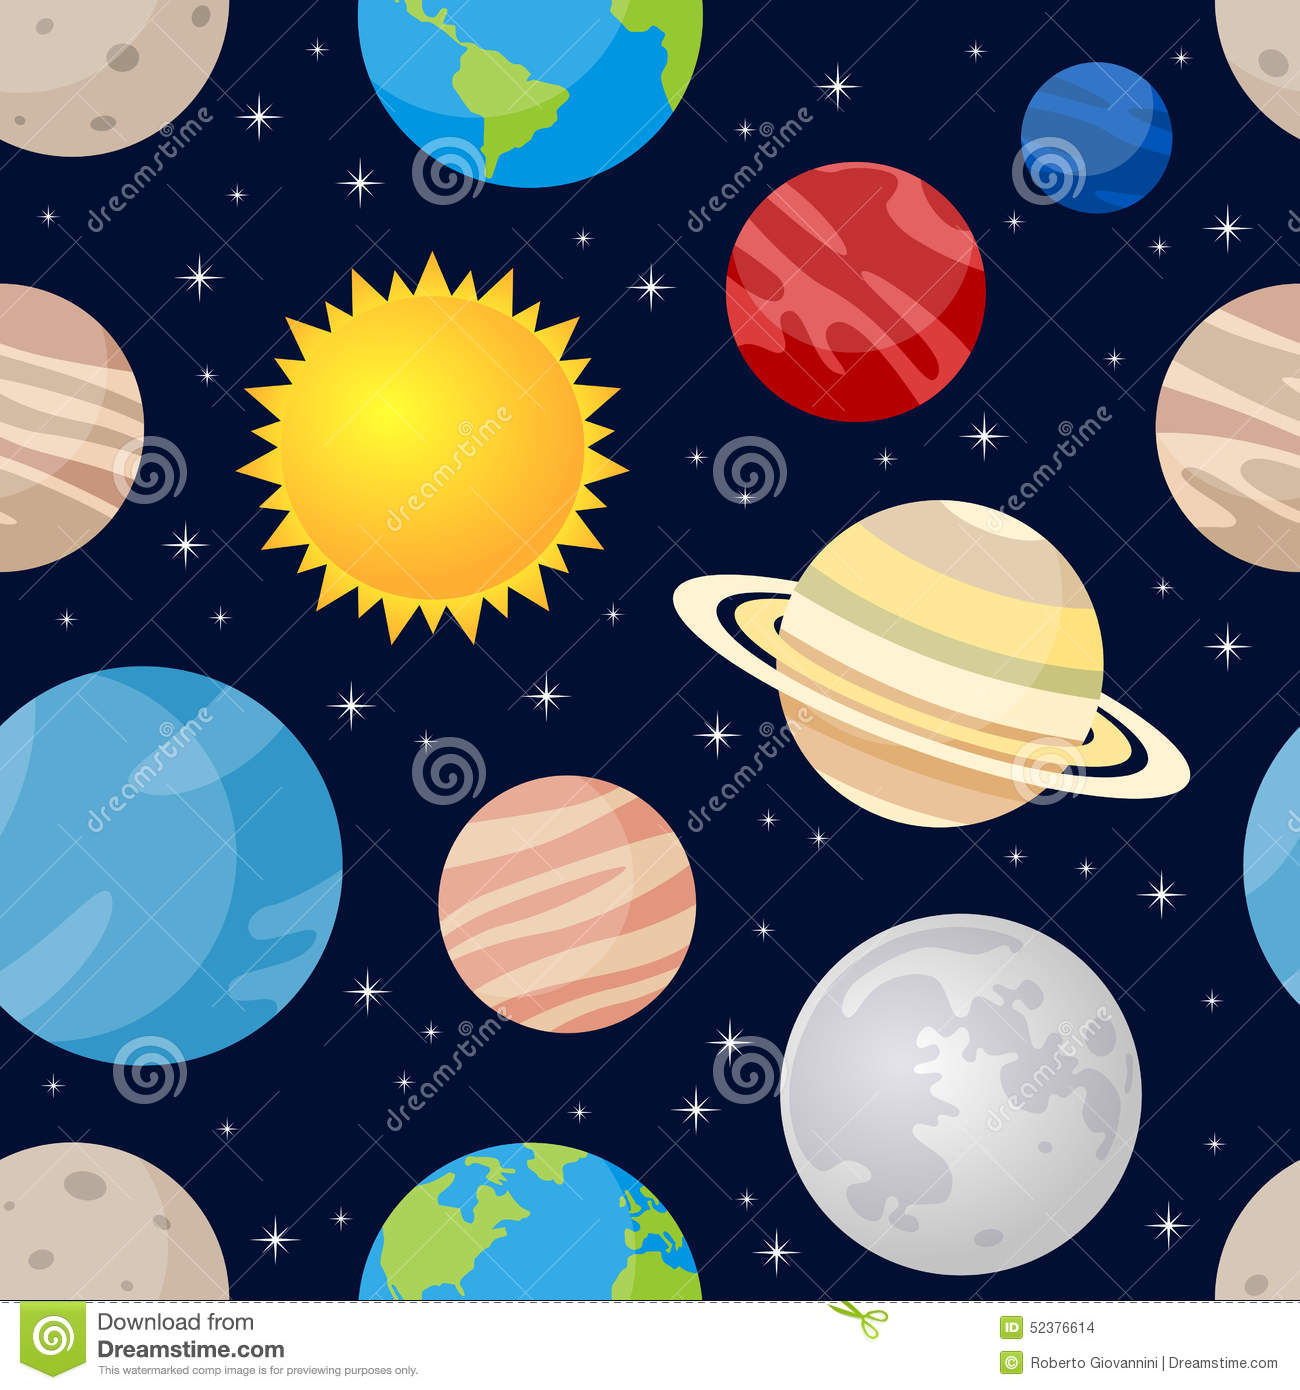 planets and stars clipart - photo #44